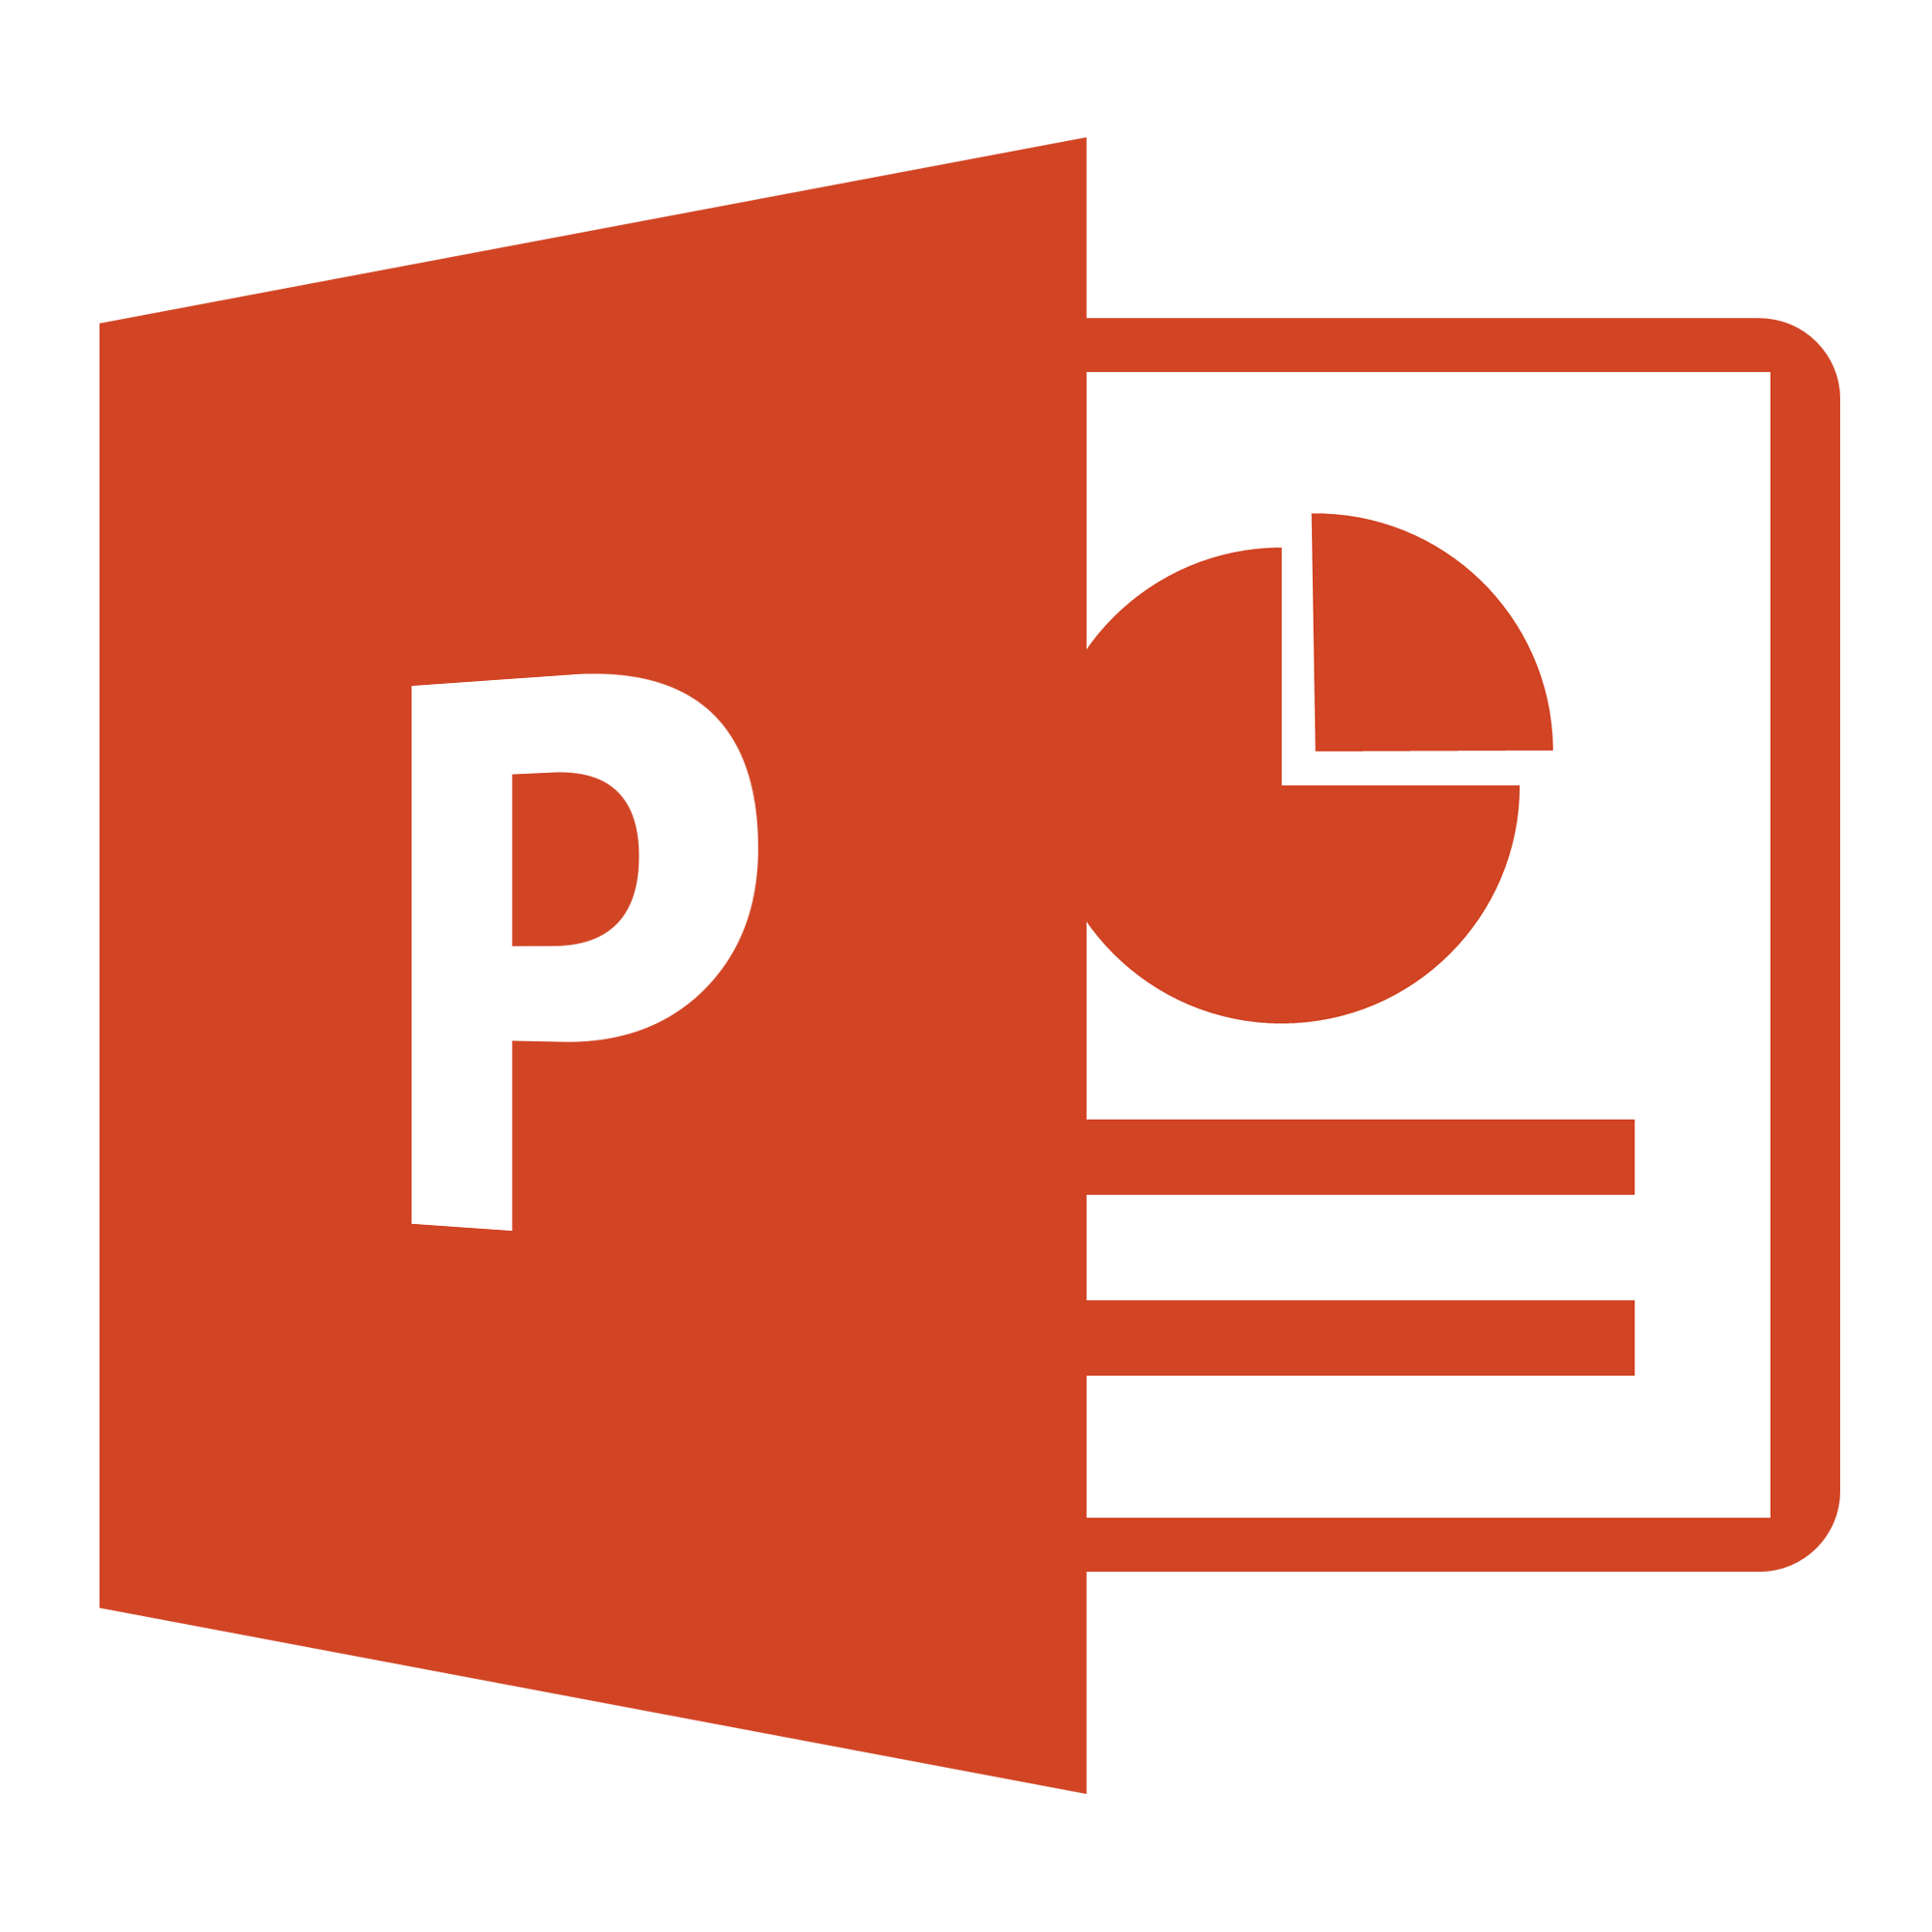 Microsoft Powerpoint Network Icon image #483